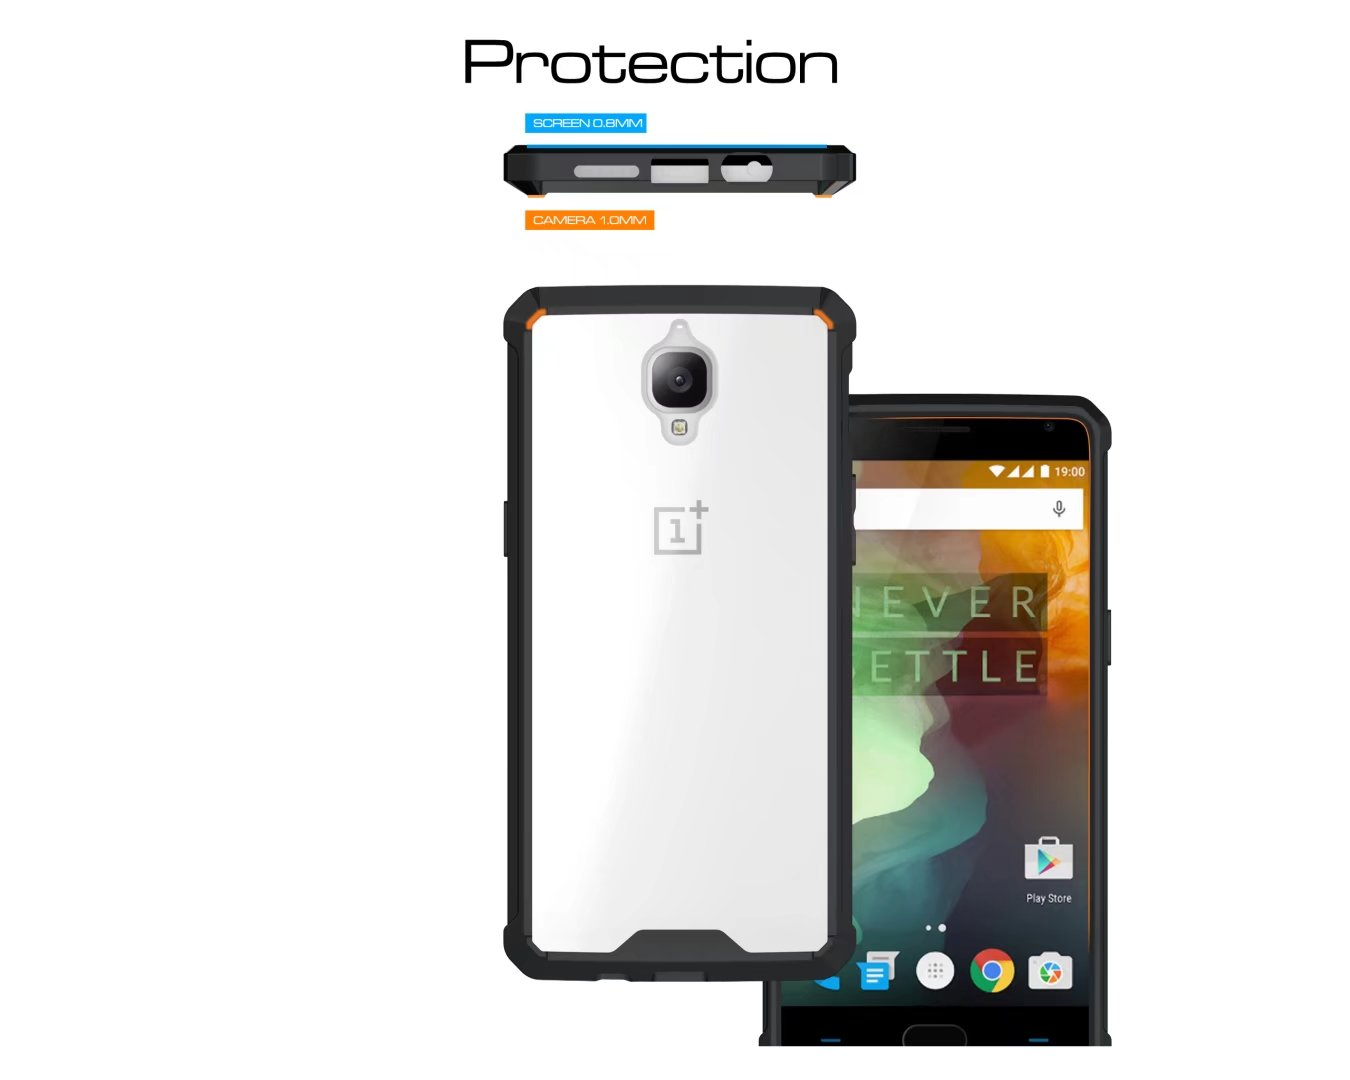 oneplus one plus 3 3T oneplus 3T UltraHybrid Armor Case Casing Cover